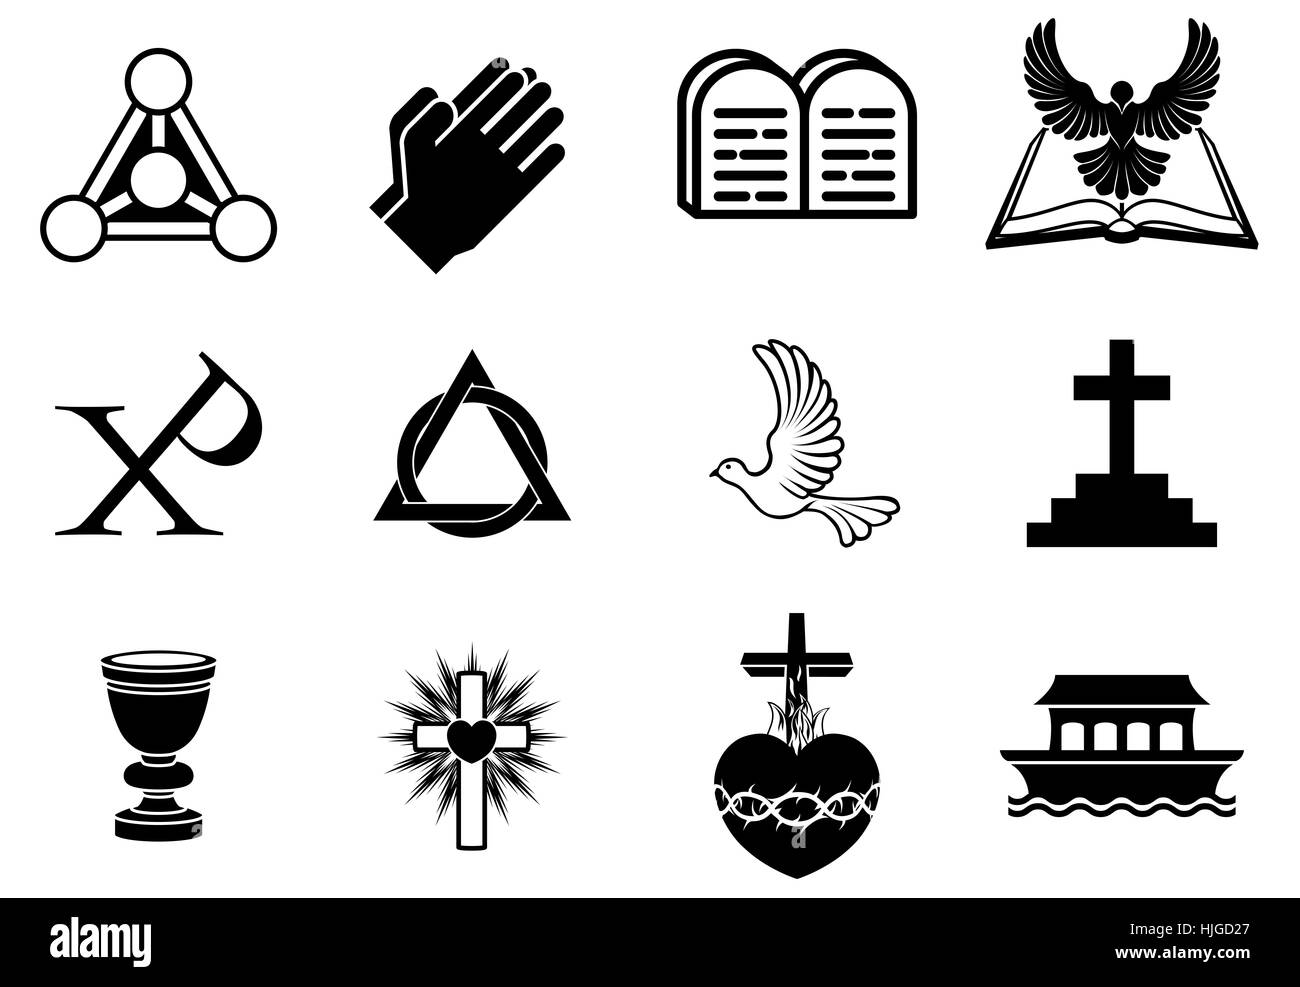 Christogram stock photos christogram stock images alamy a set of christianity icons and symbols including dove chi ro praying hands biocorpaavc Choice Image